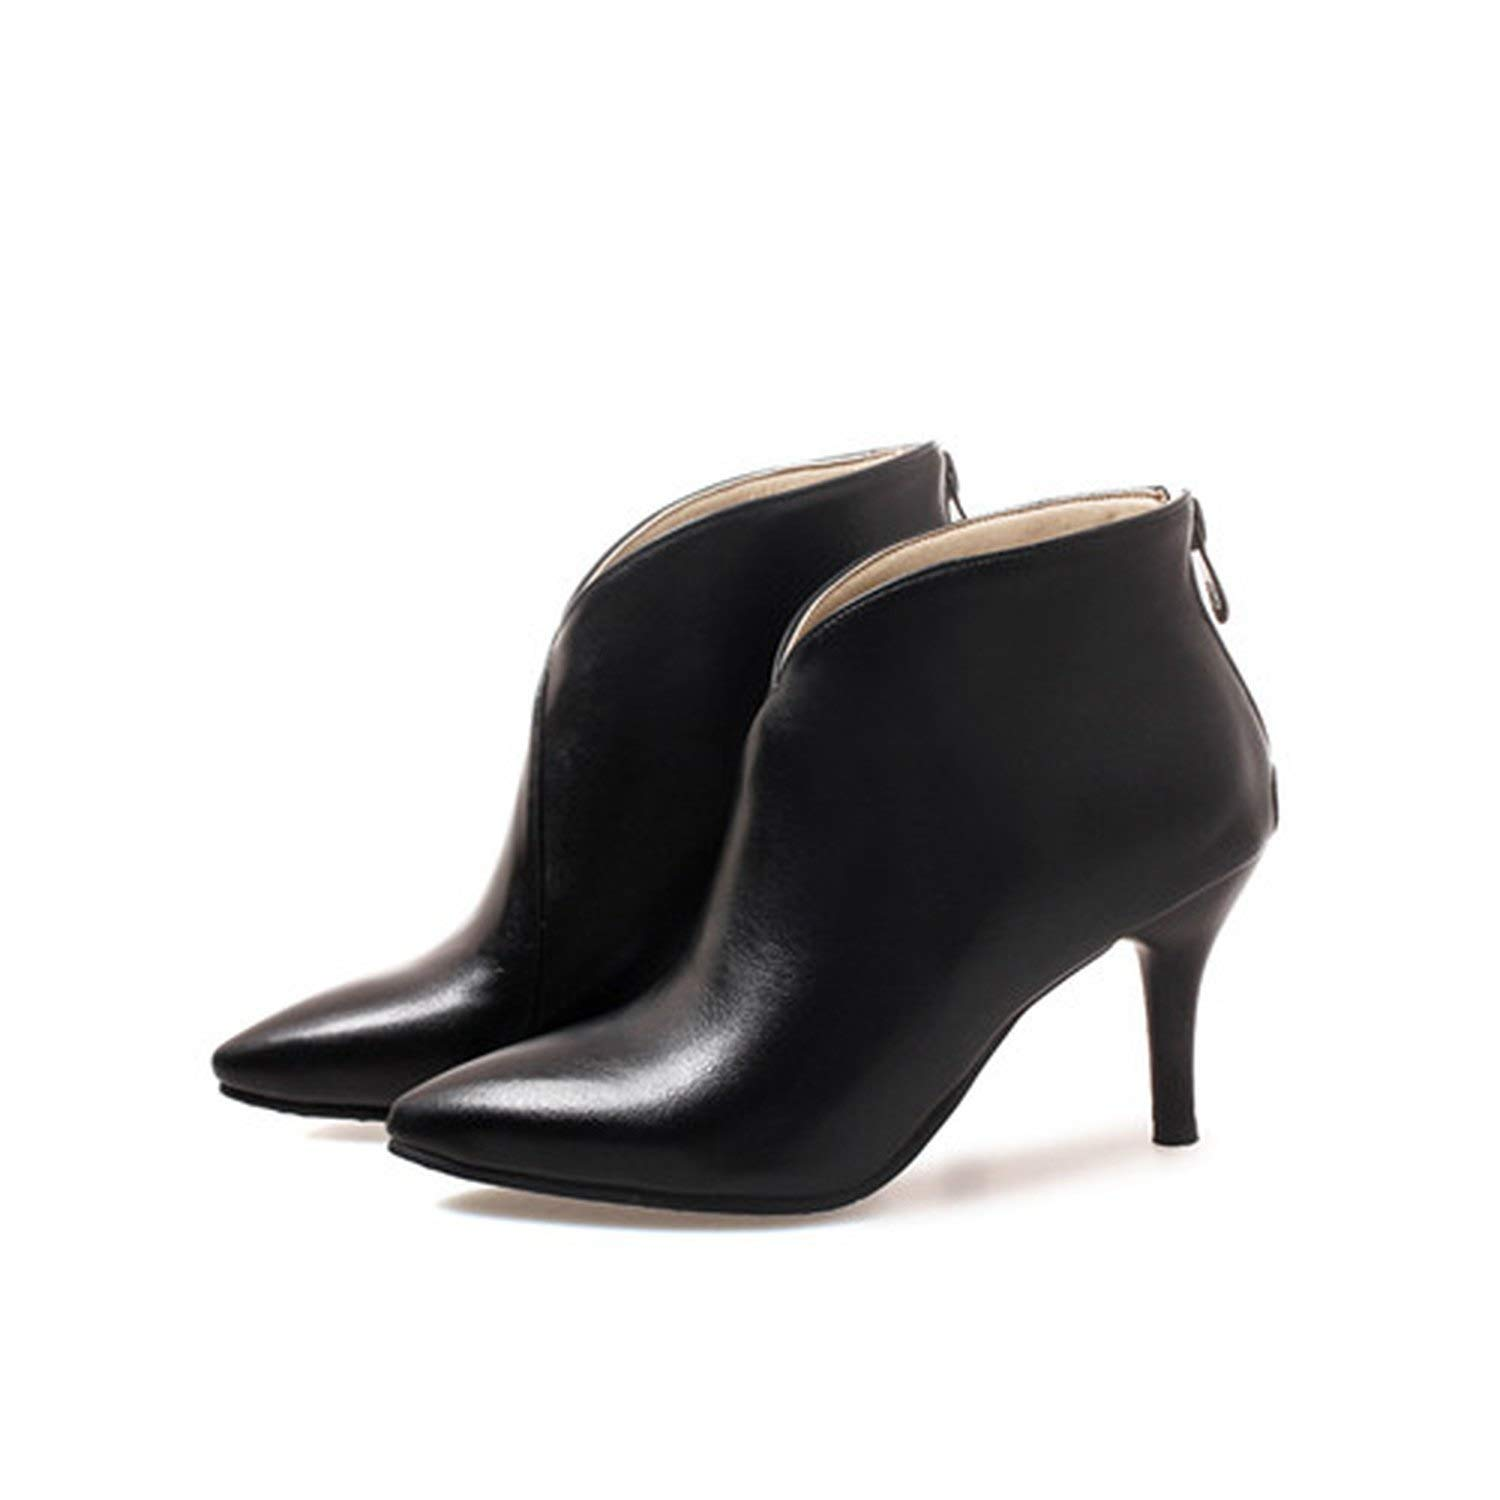 2 Large Size Women Boots Pointed Toe High Heels Women's shoes Sexy Autumn Winter Ankle Boots